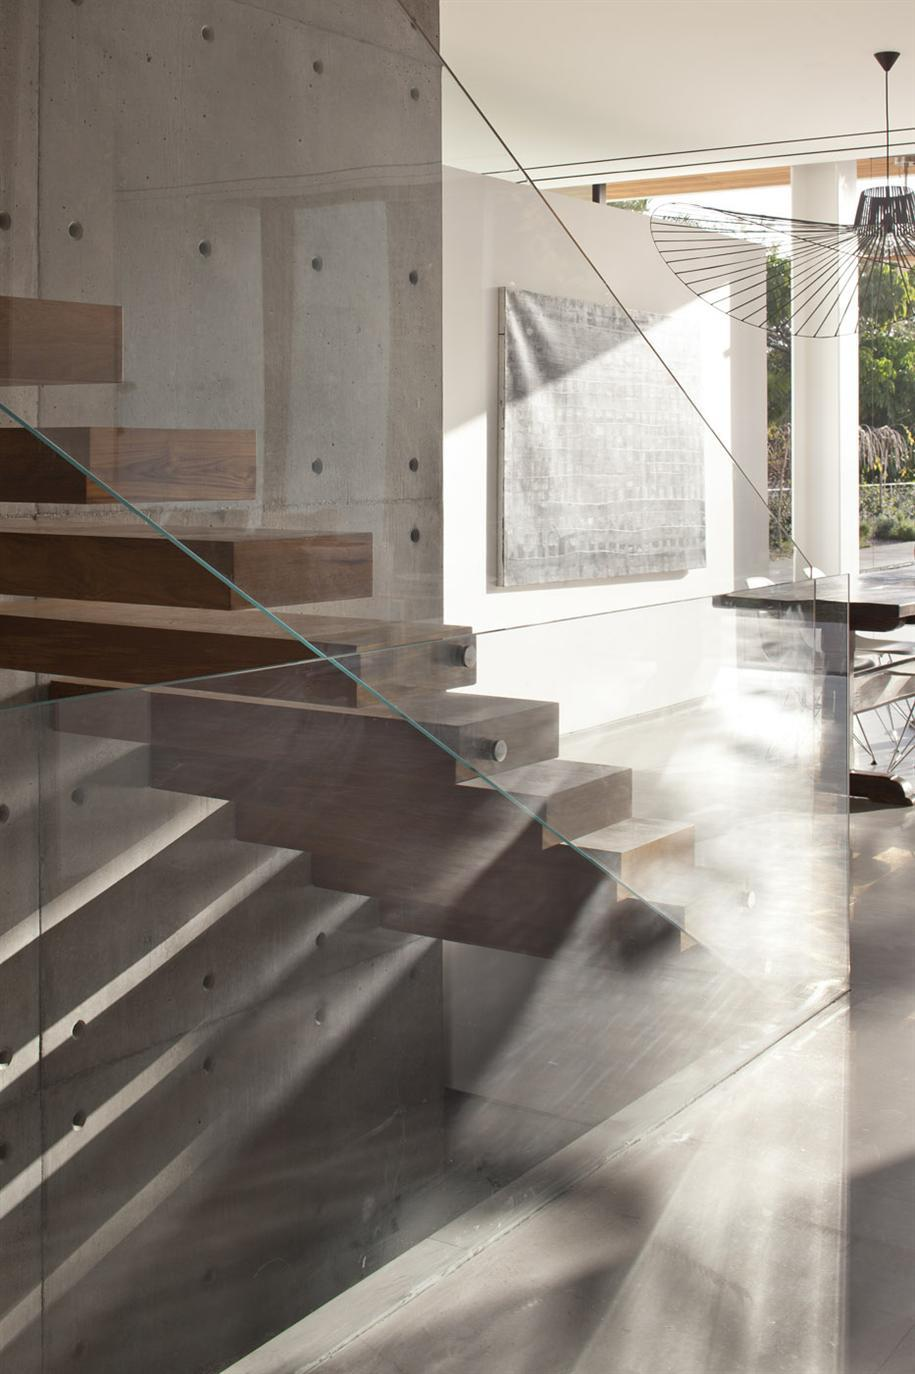 Staircase At The KFAR SHMARYAHU HOUSE By Pitsou Kedem Architects